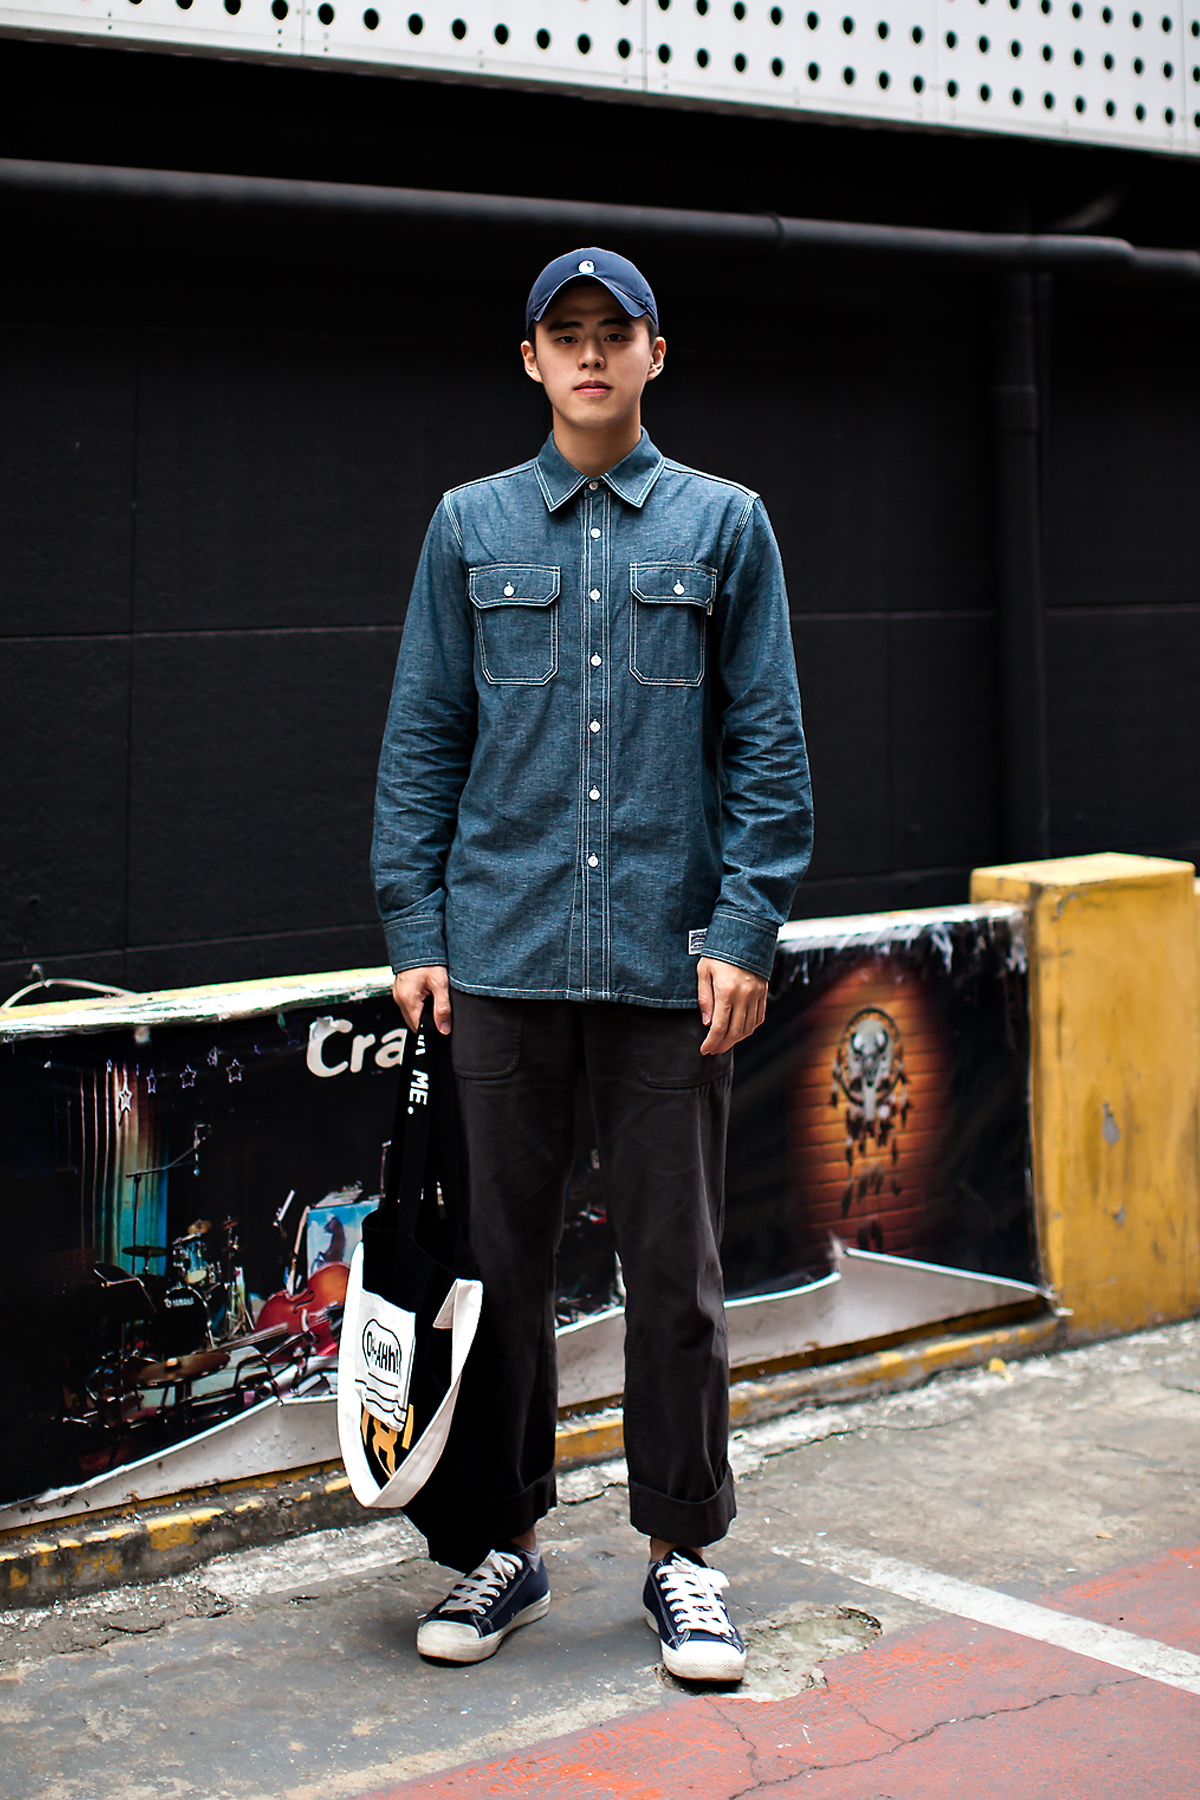 Choi Heejae, Street Fashion 2017 in Seoul.jpg